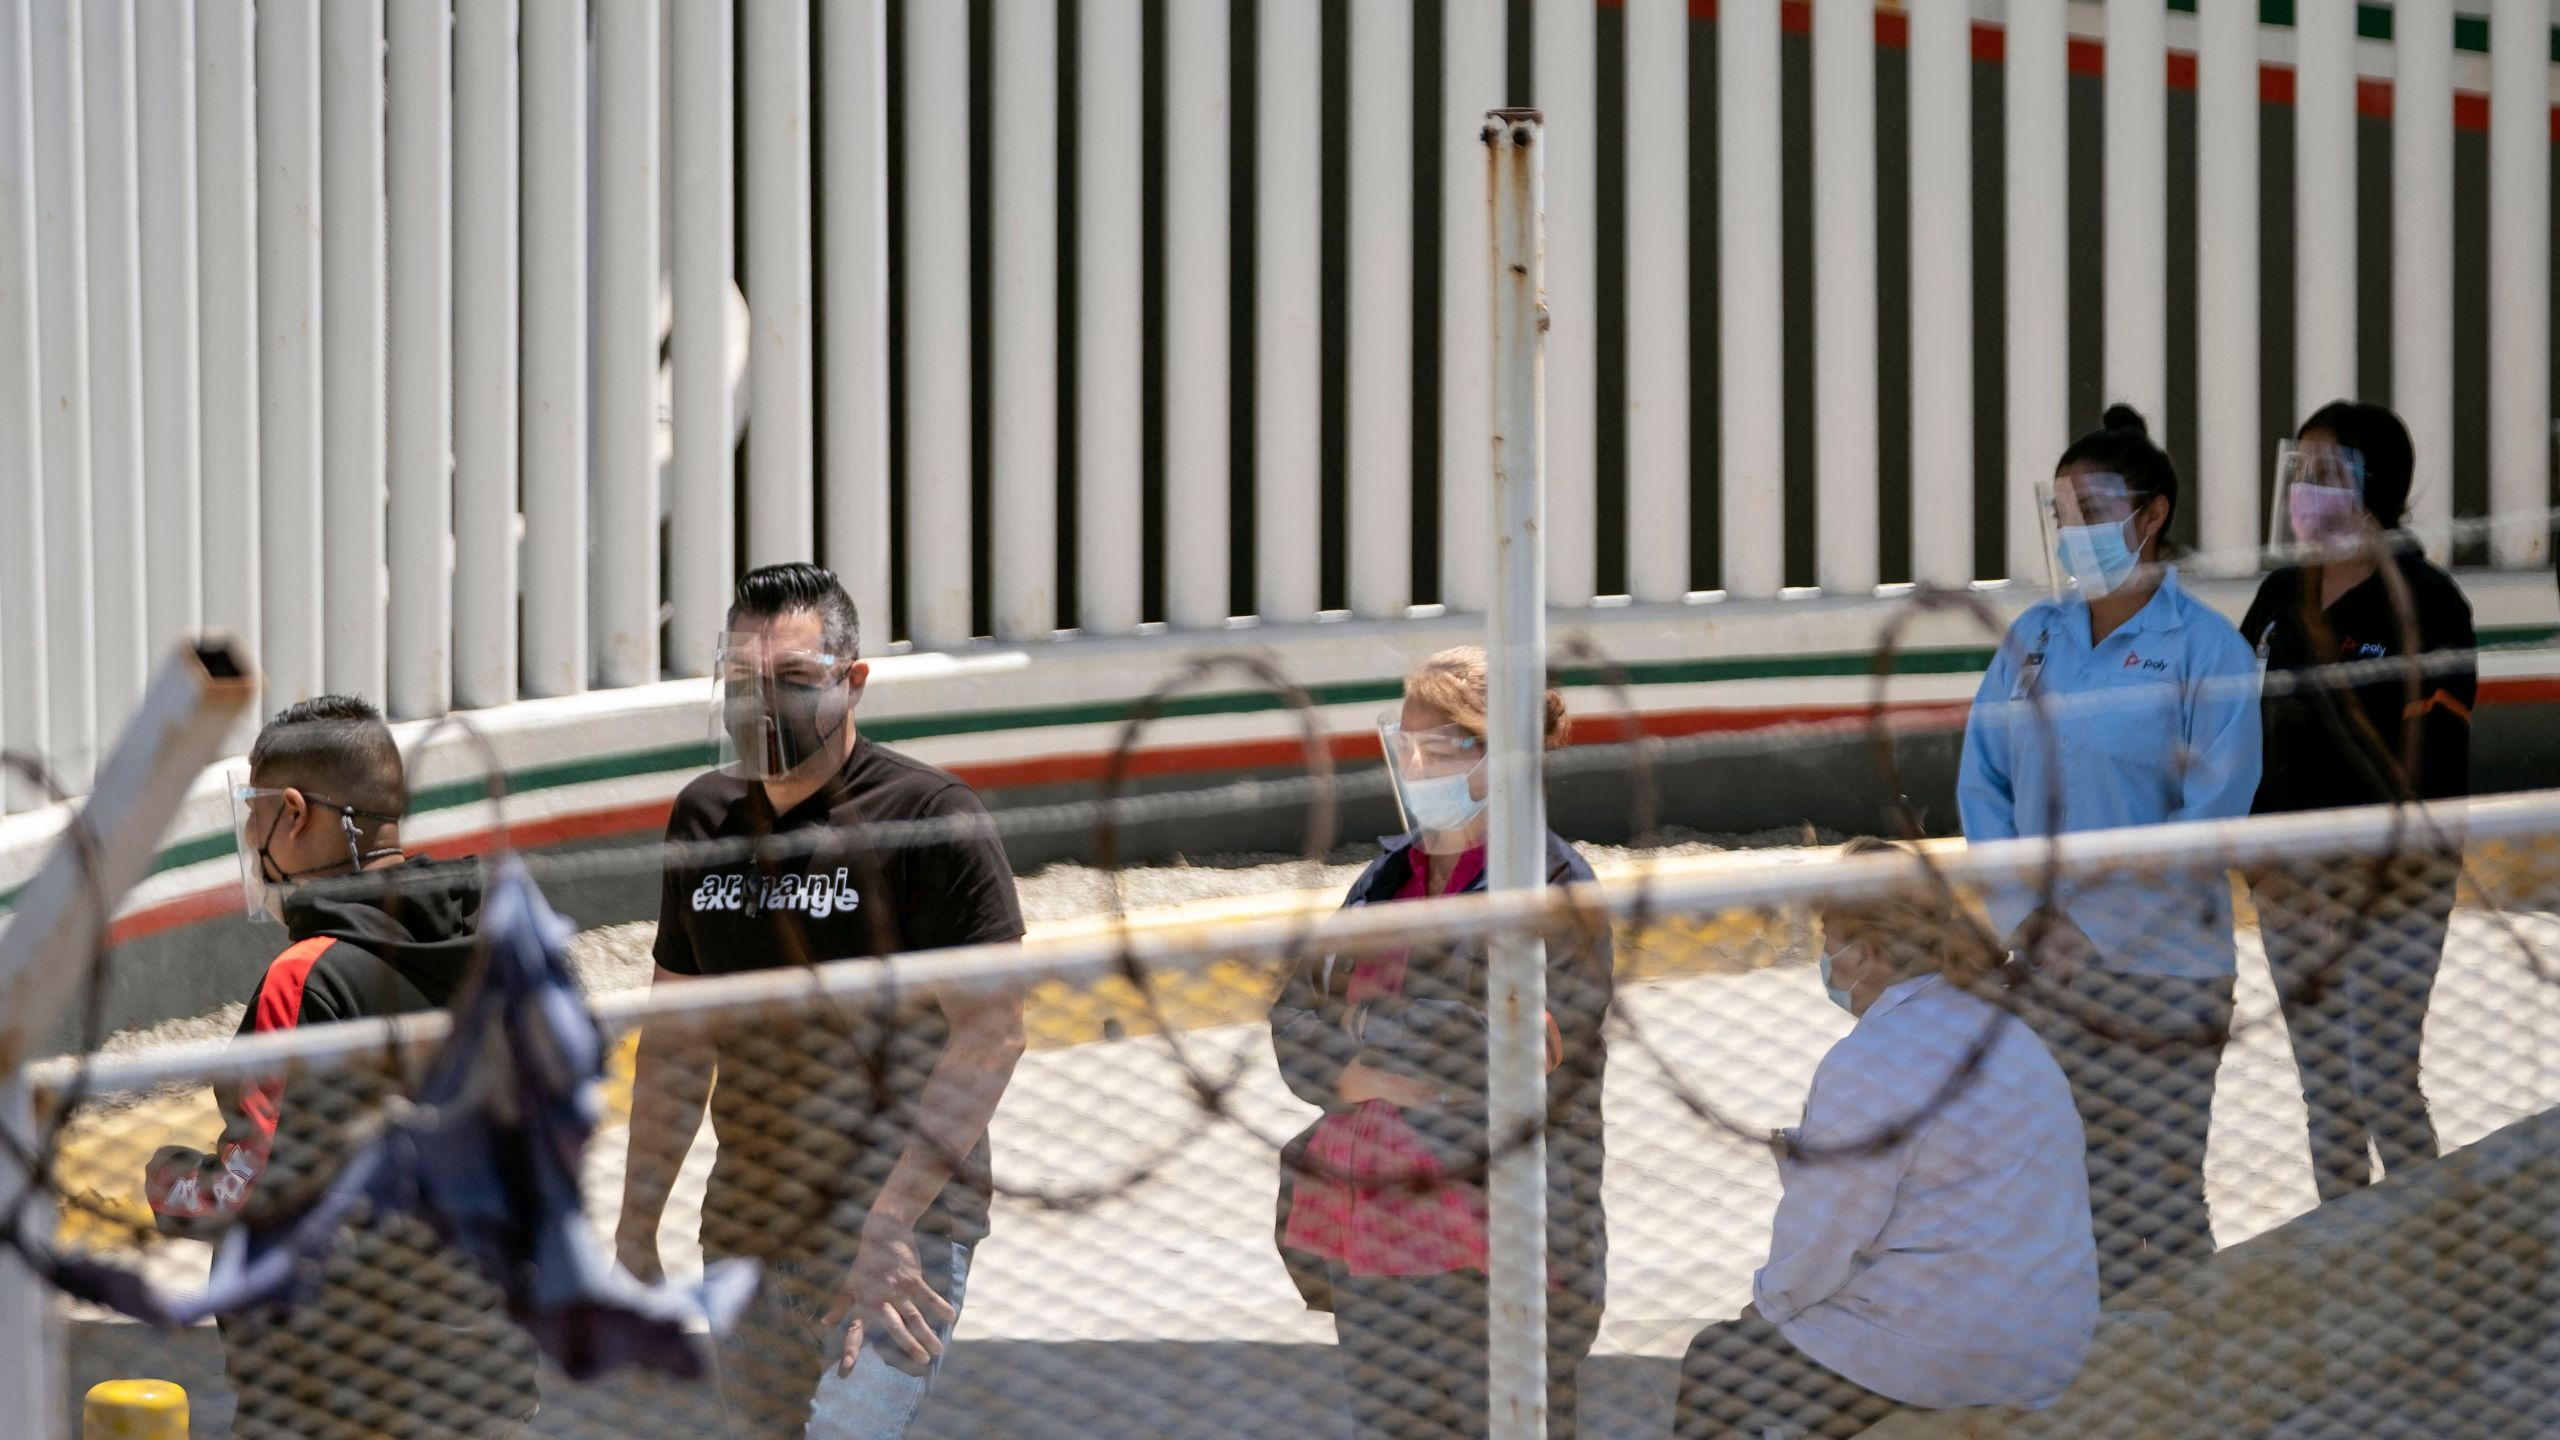 Maquila workers line up to cross the border and get vaccinated against COVID-19 on the U.S. side as seen from El Chaparral crossing port of Tijuana, Baja California state, Mexico on May 25, 2021. (GUILLERMO ARIAS/AFP via Getty Images)